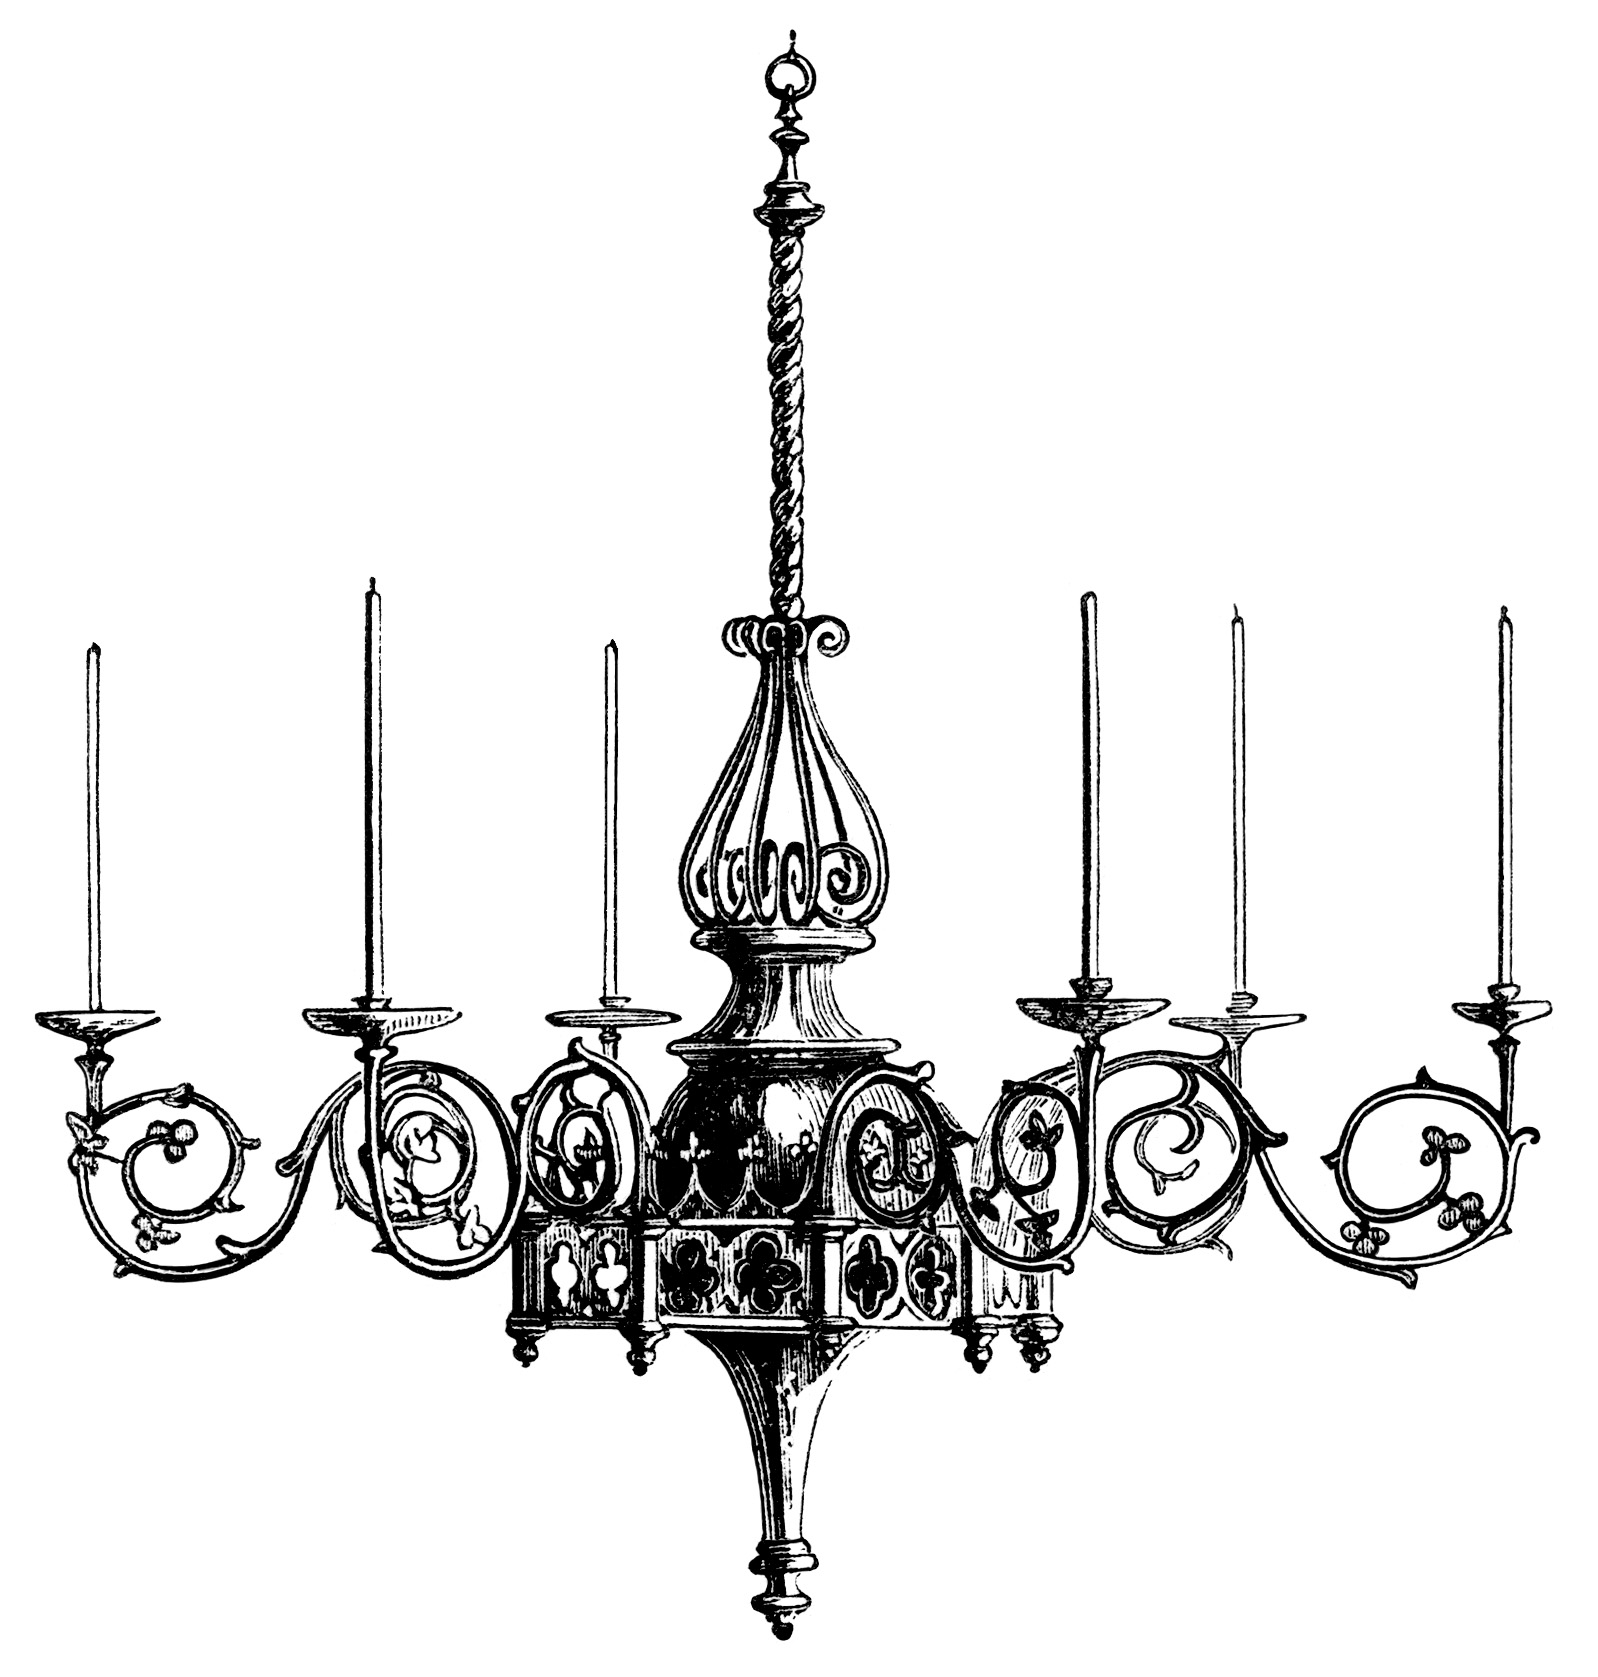 Victorian chandelier illustration, black and white graphics.